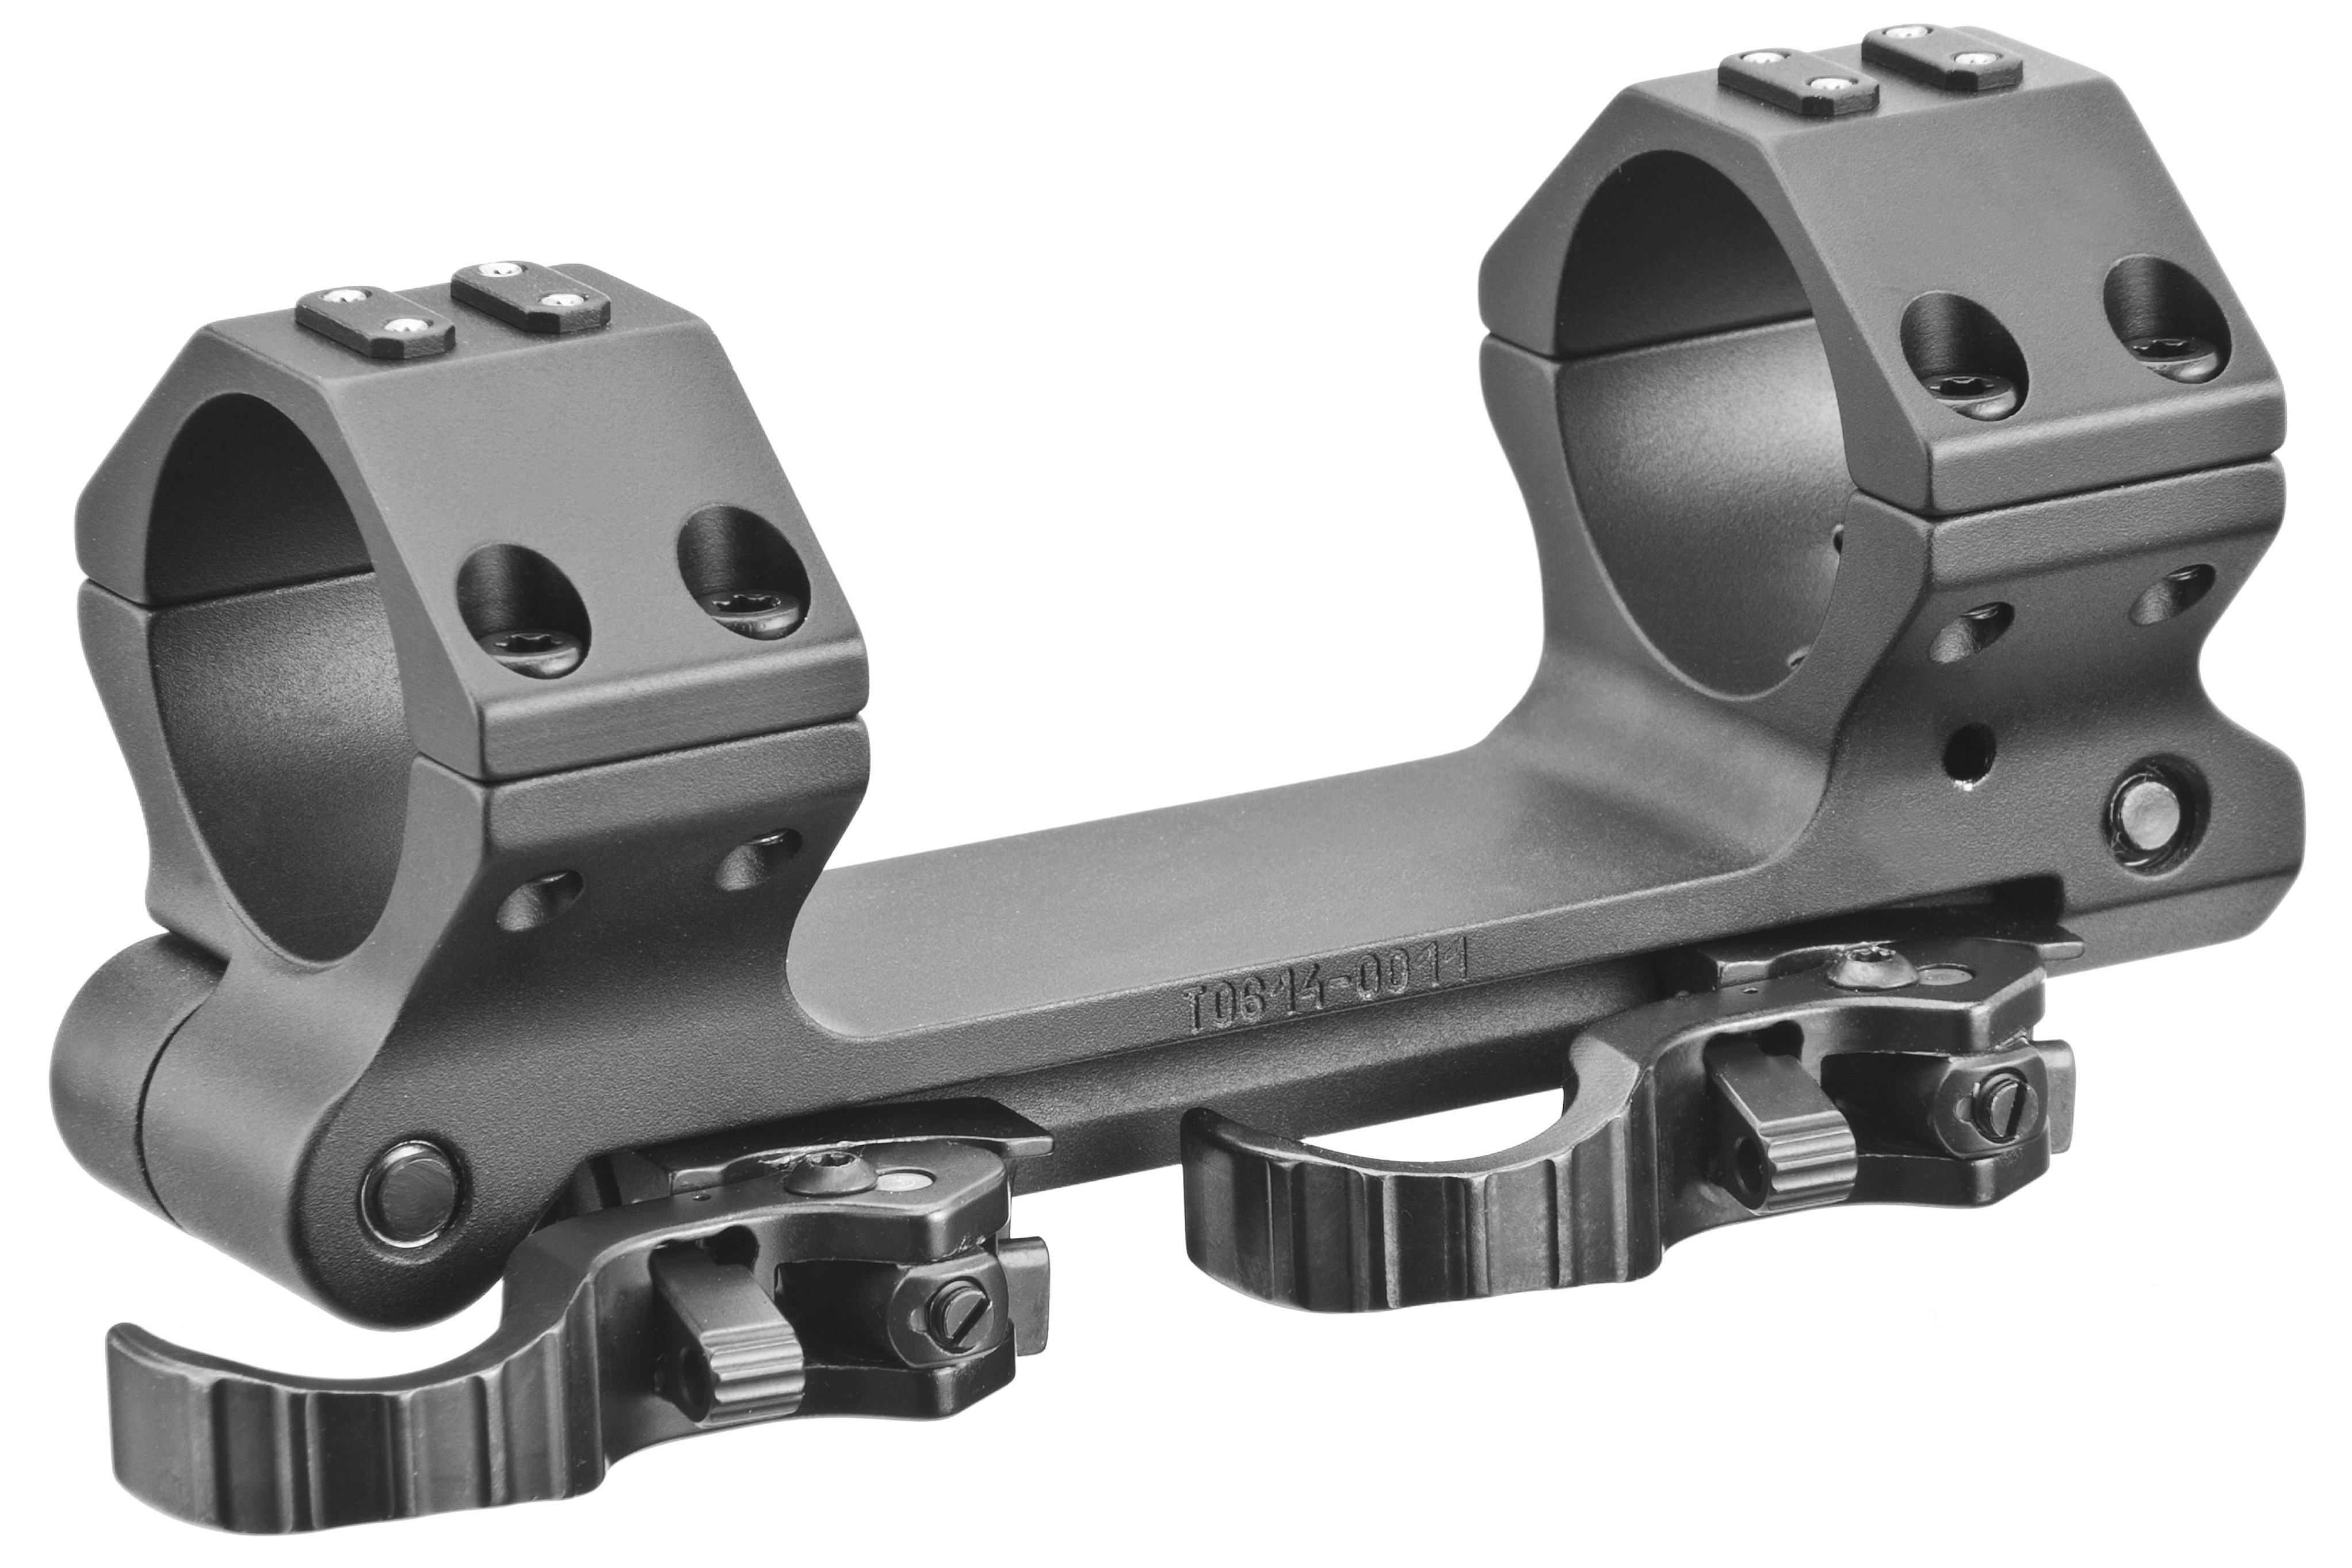 ERATAC Adjustable Inclination Mount w/ Levers - R-T1063-0025